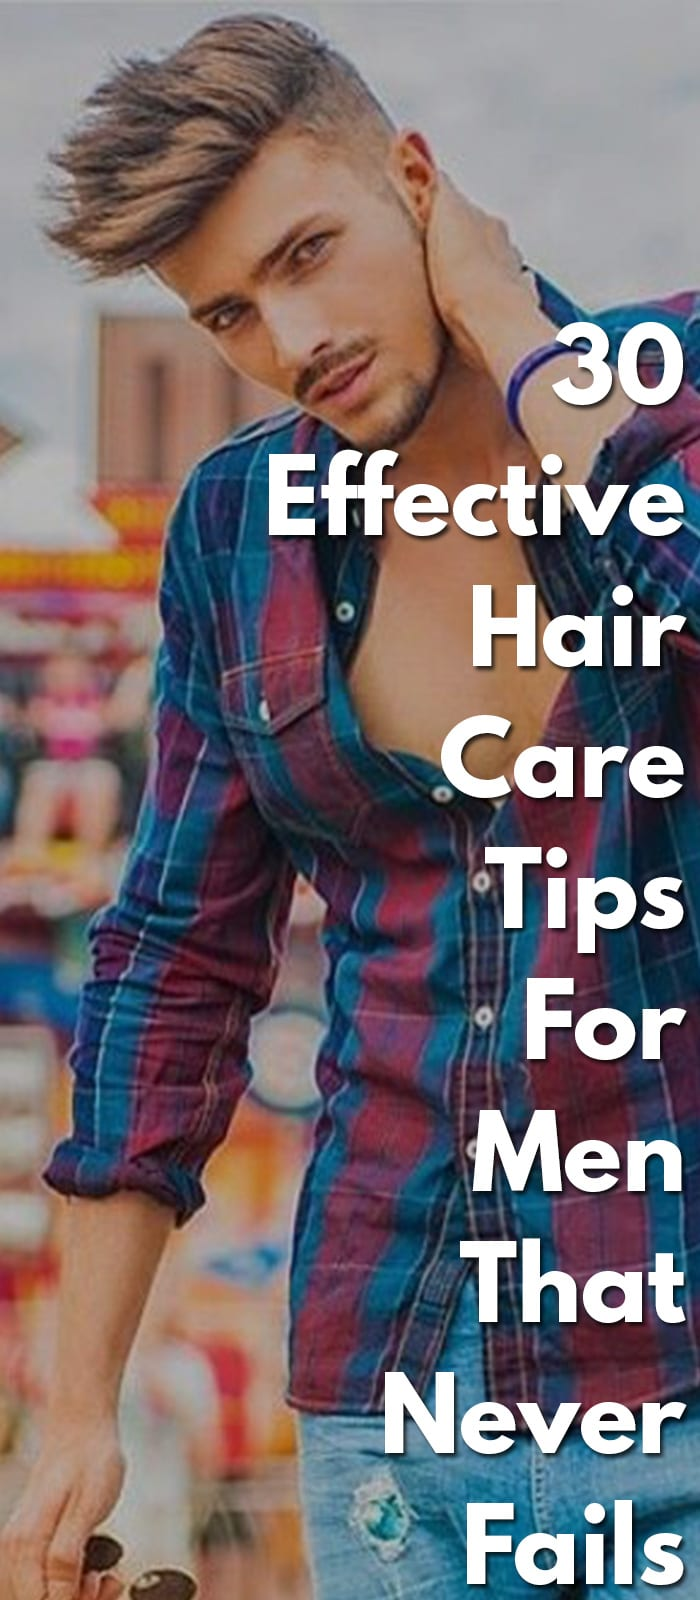 30-Effective-Hair-Care-Tips-For-Men-That-Never-Fails...